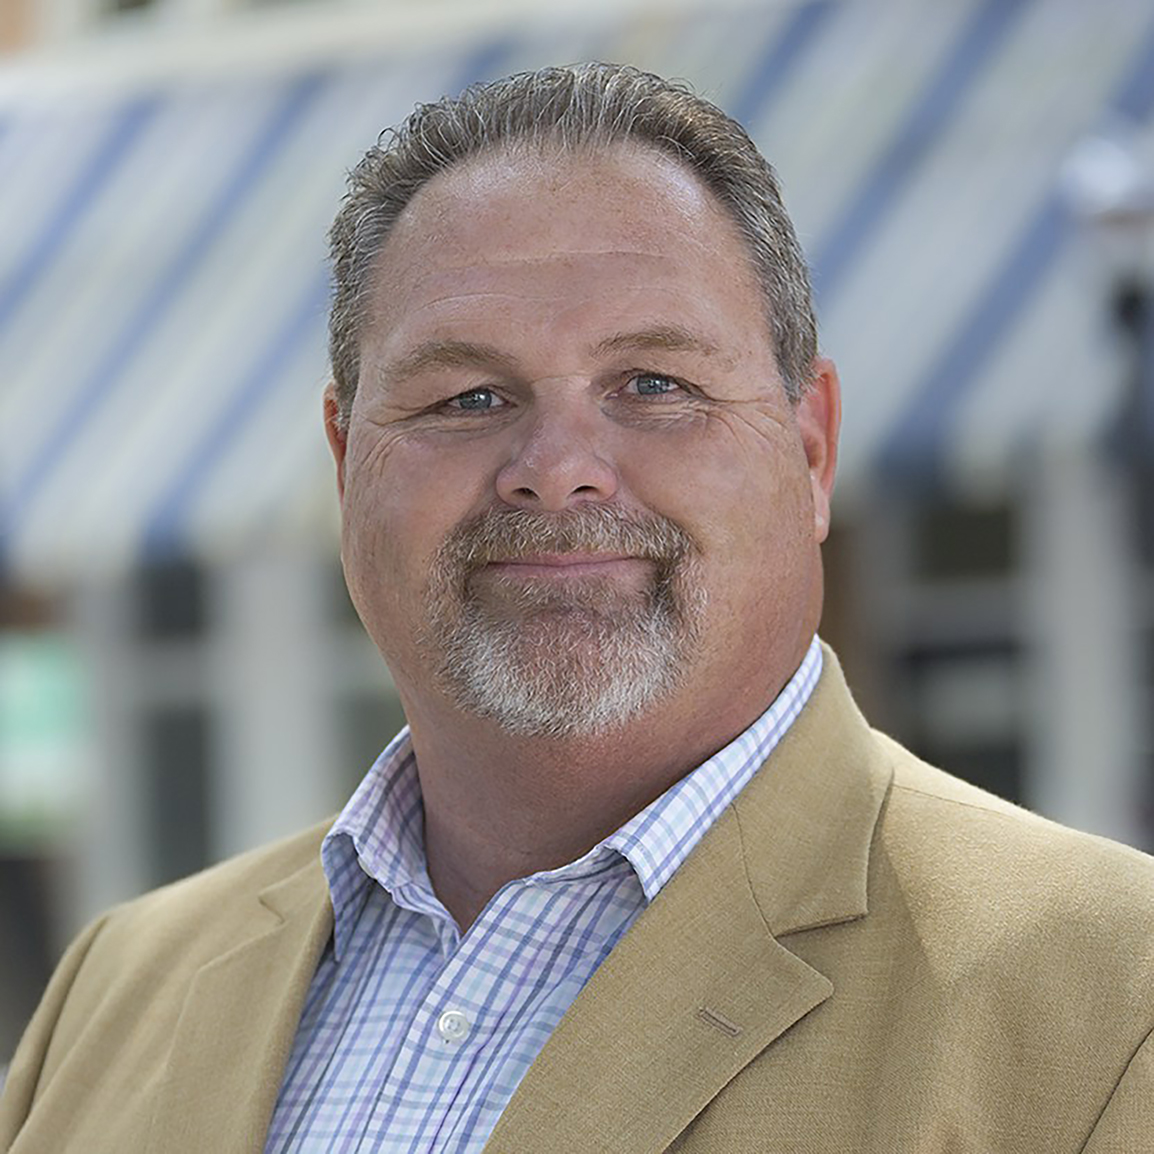 ►Gary Hester, a veteran of public service in Polk County, has joined Coldwell Banker Commercial Saunders Ralston Dantzler Realty as a commercial real estate sales associate.